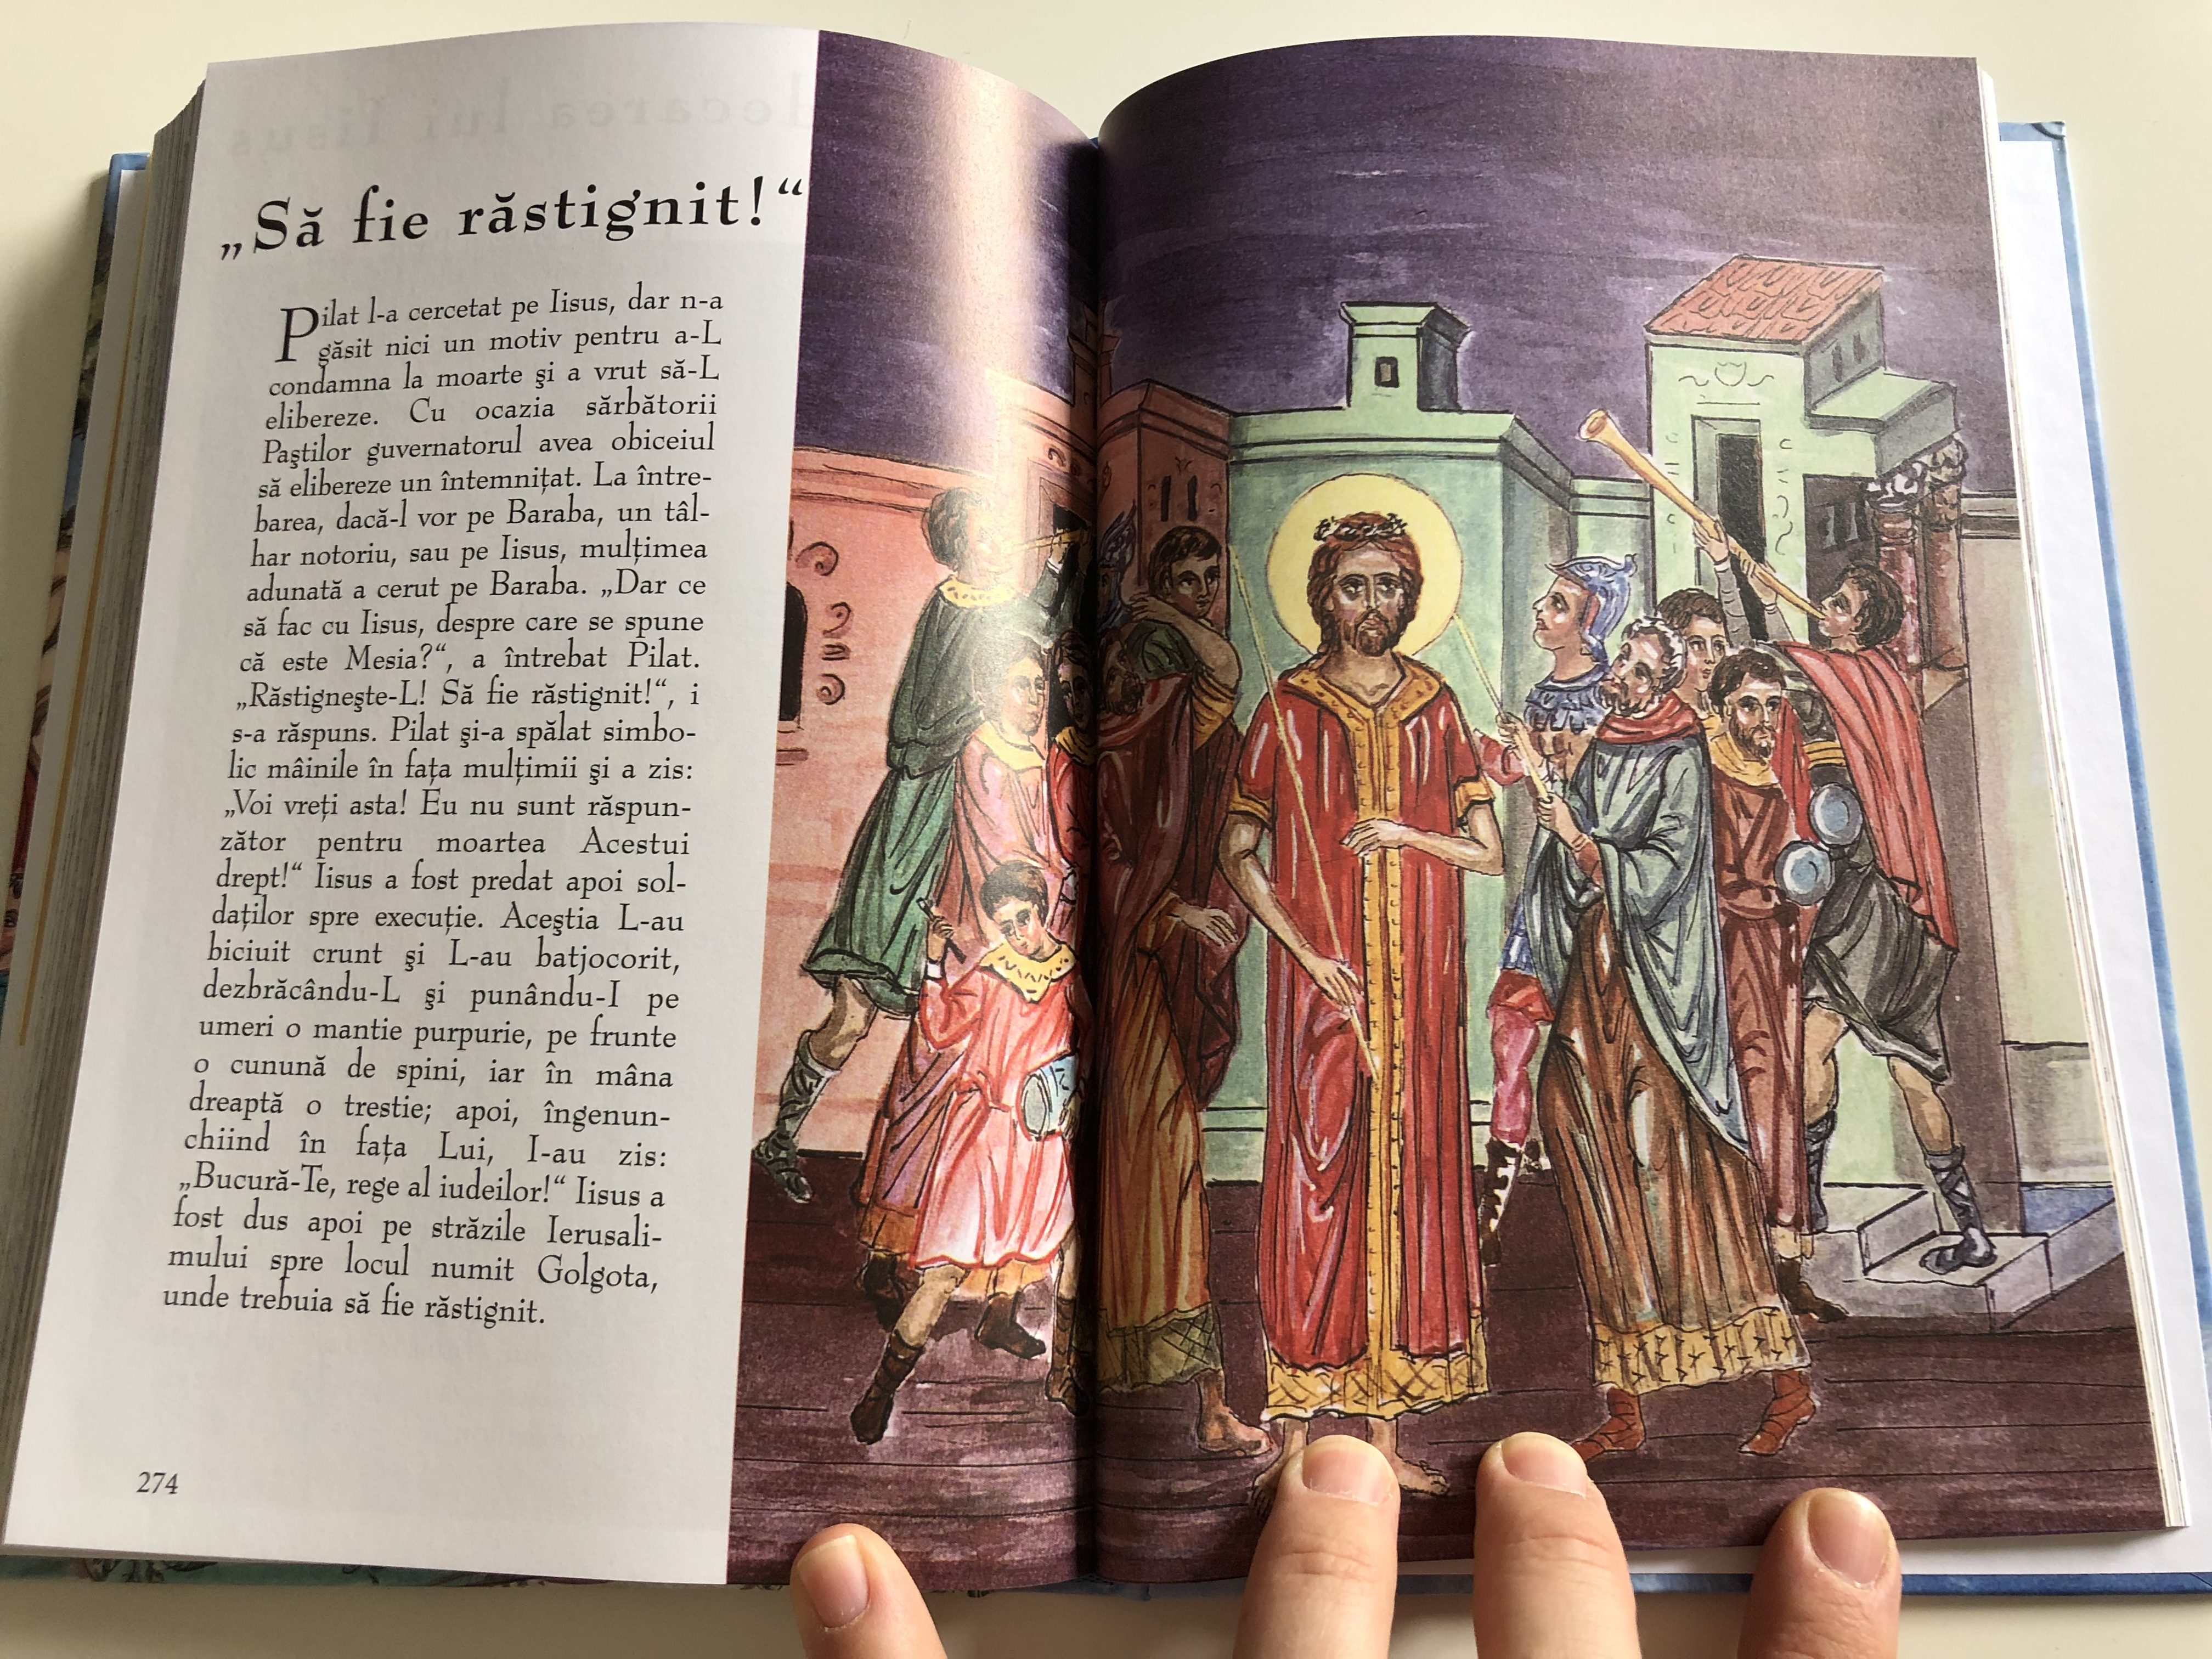 -biblia-istorisit-pentru-copii-bible-stories-for-children-romanian-orthodox-children-s-bible-hardcover-2013-orthodox-style-illustrations-by-martha-xynopoulou-kapetanakou-societ-ii-biblice-interconfesionale-din-rom-n-6357111-.jpg